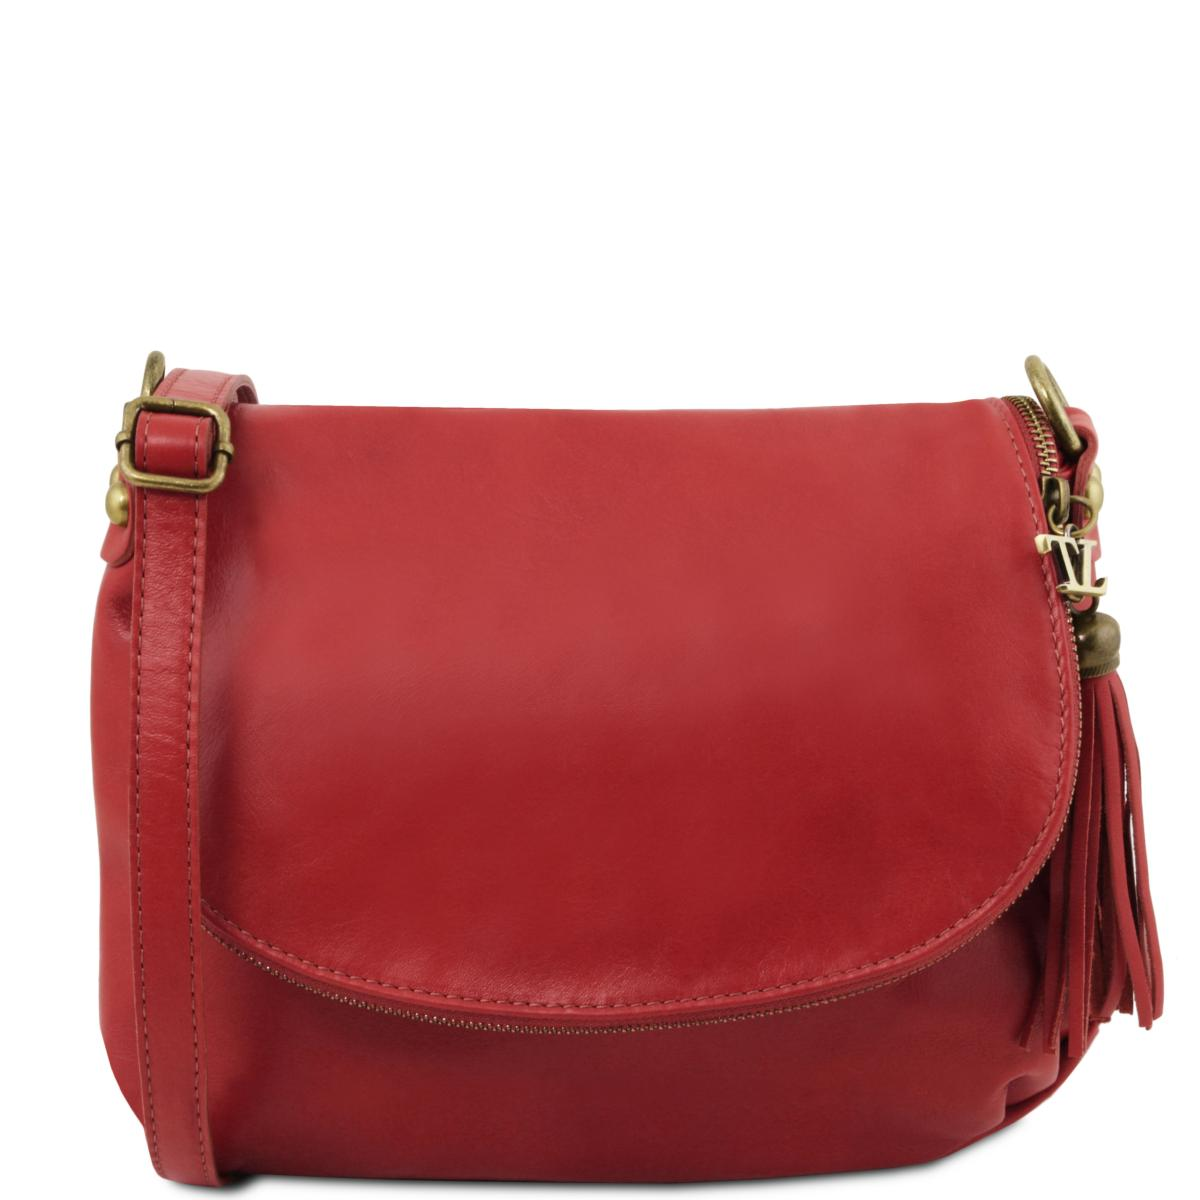 Sac Bandoulière Cuir Besace Femme Rouge - Tuscany Leather -